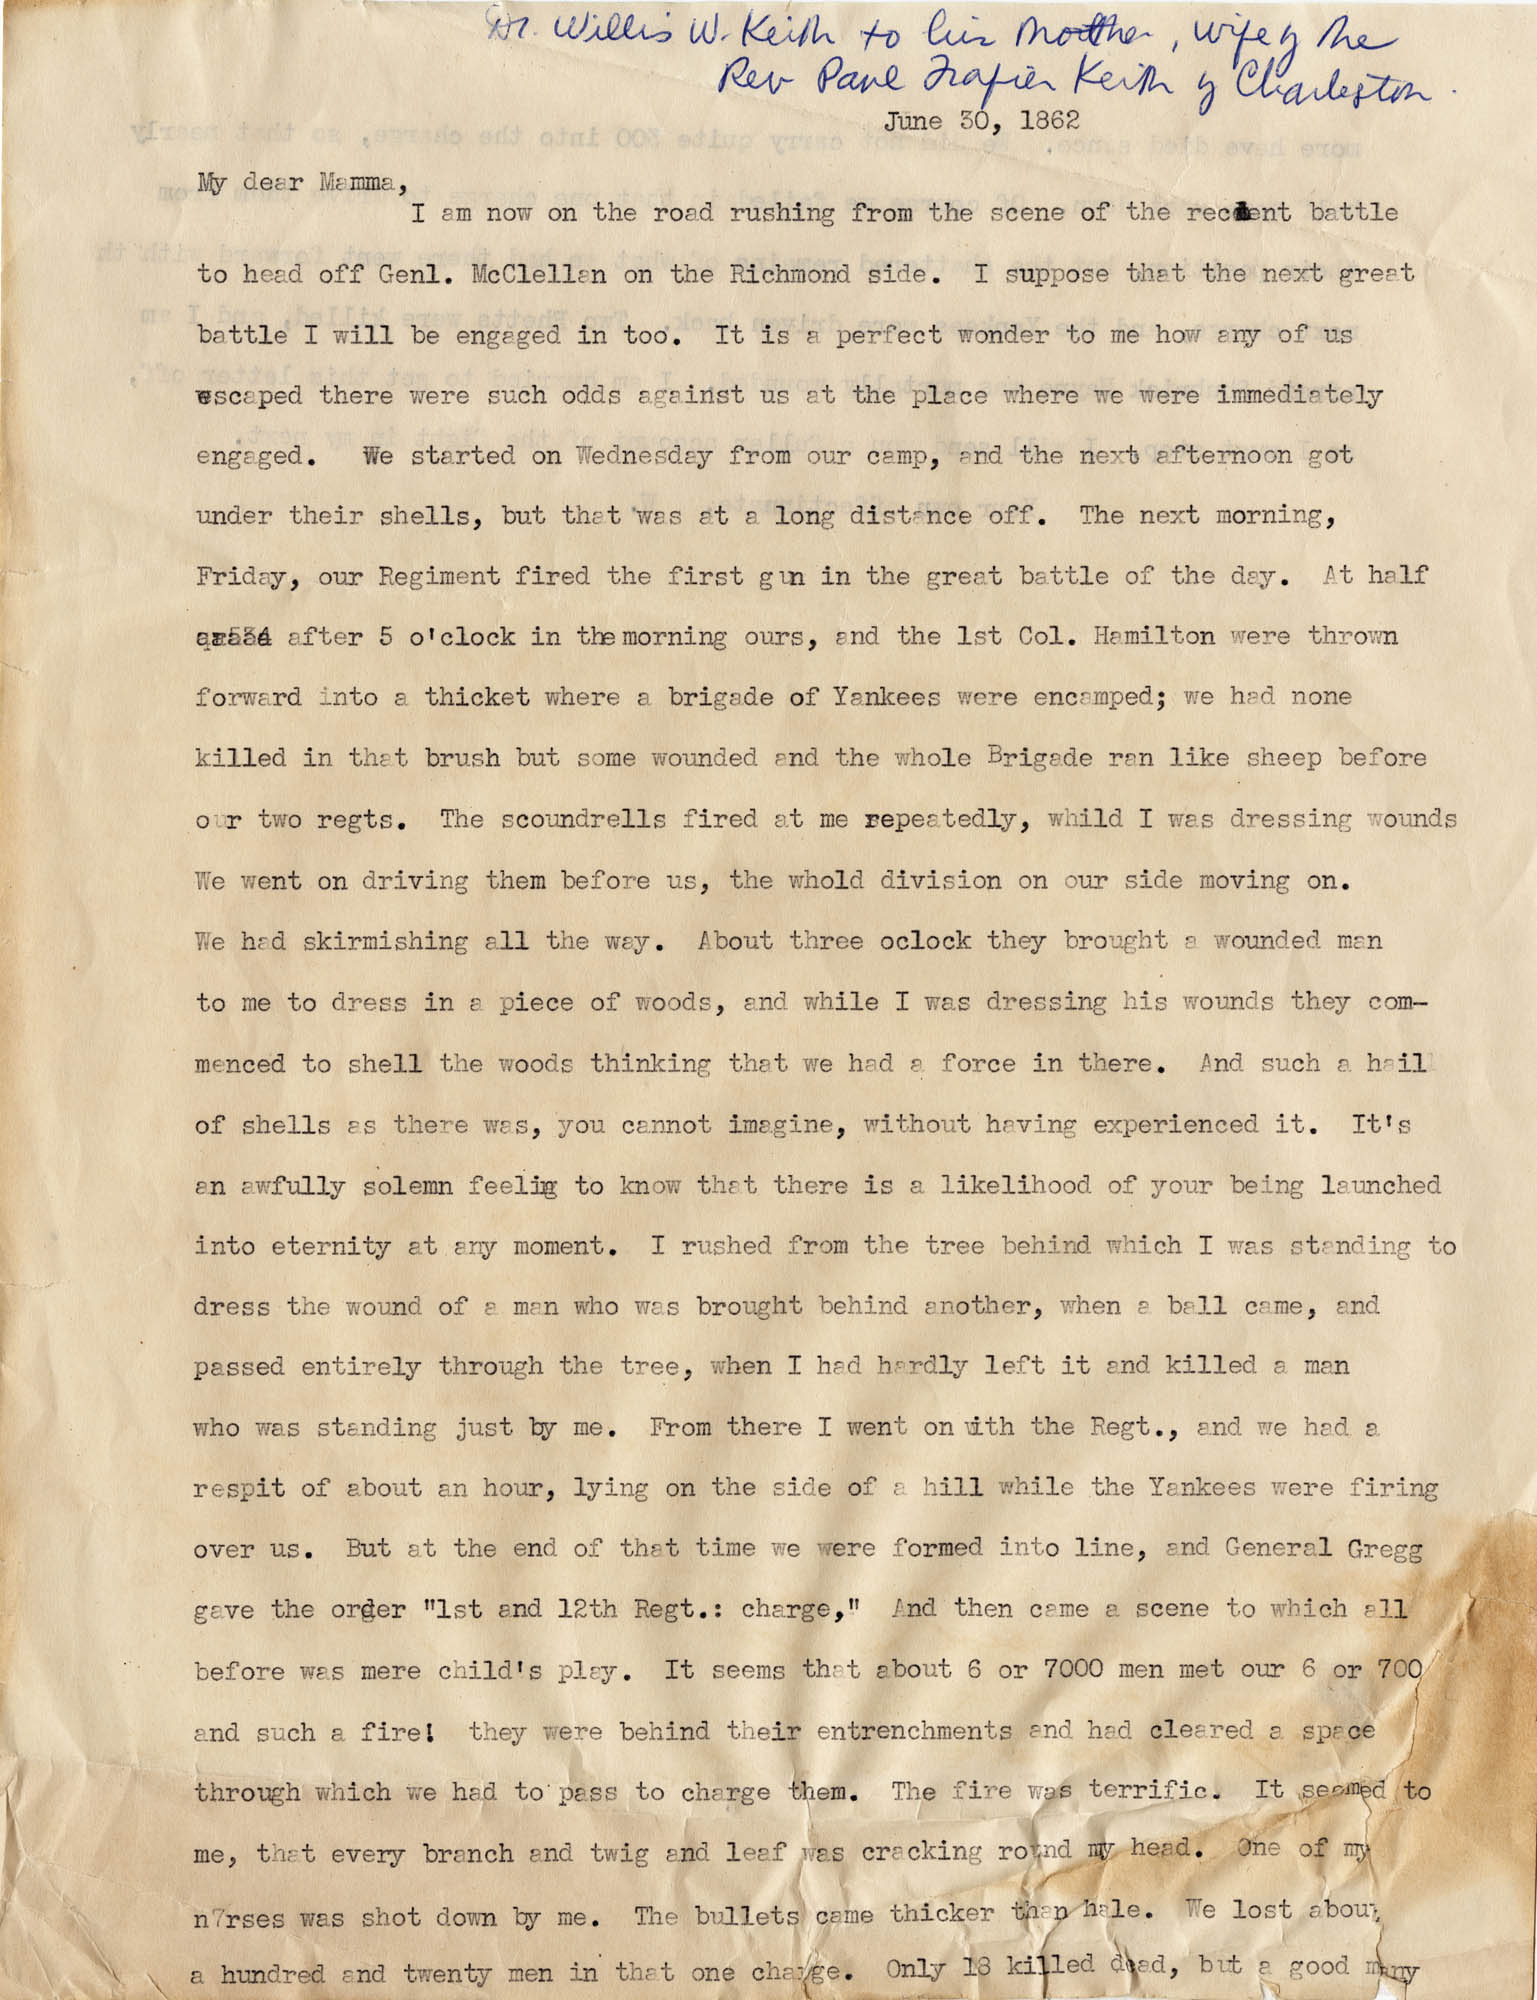 059. Willis Keith to Anna Bell Keith -- June 30, 1862